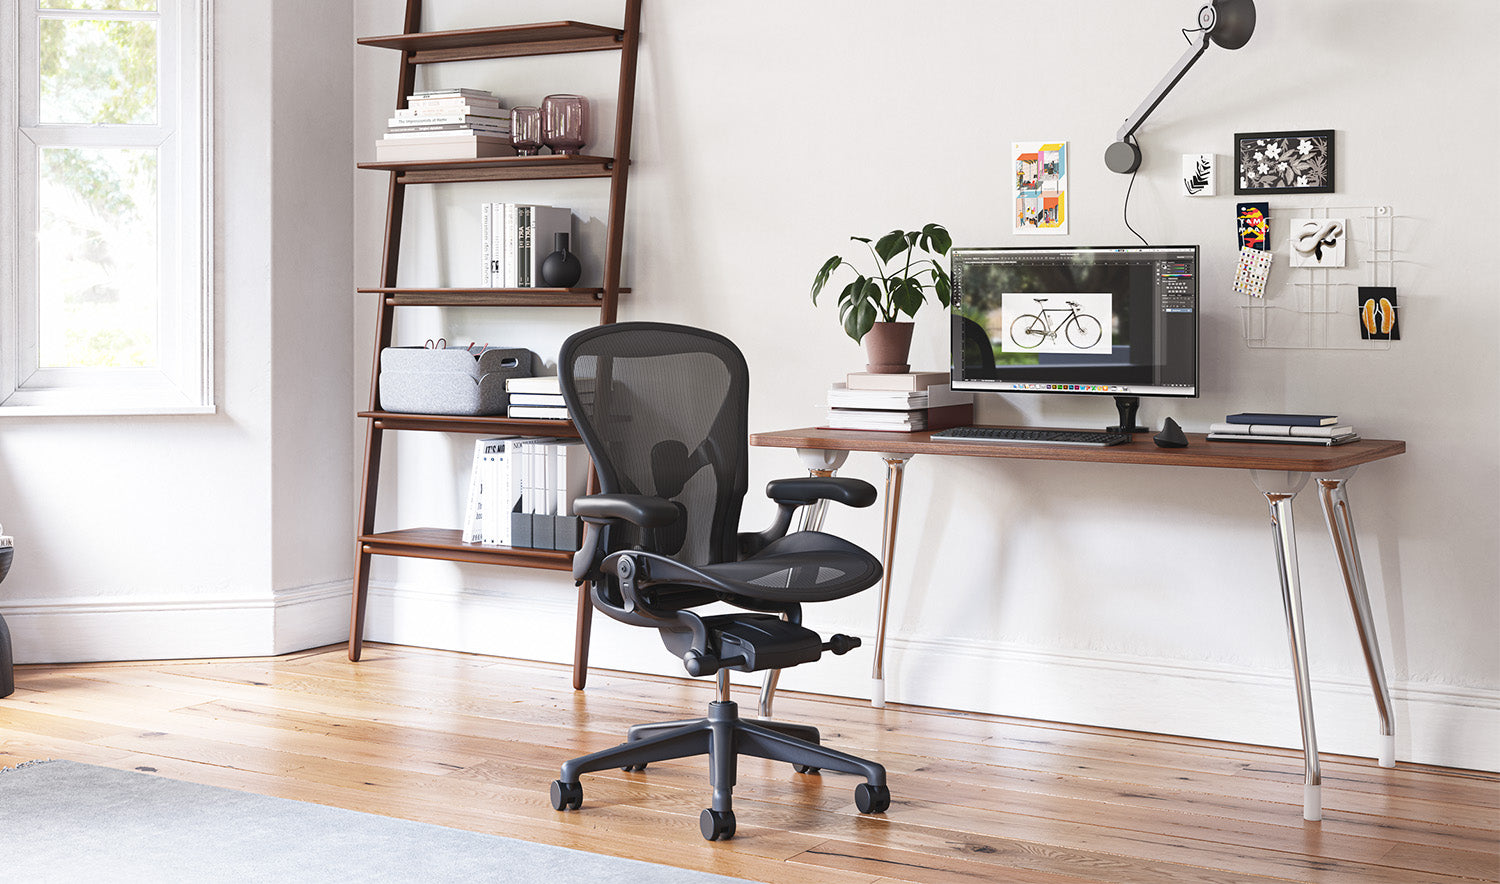 A graphite Aeron chair in front of an AbakEnvironments desk. A Hew side table and Folk shelving unit are against the walls in a home office.